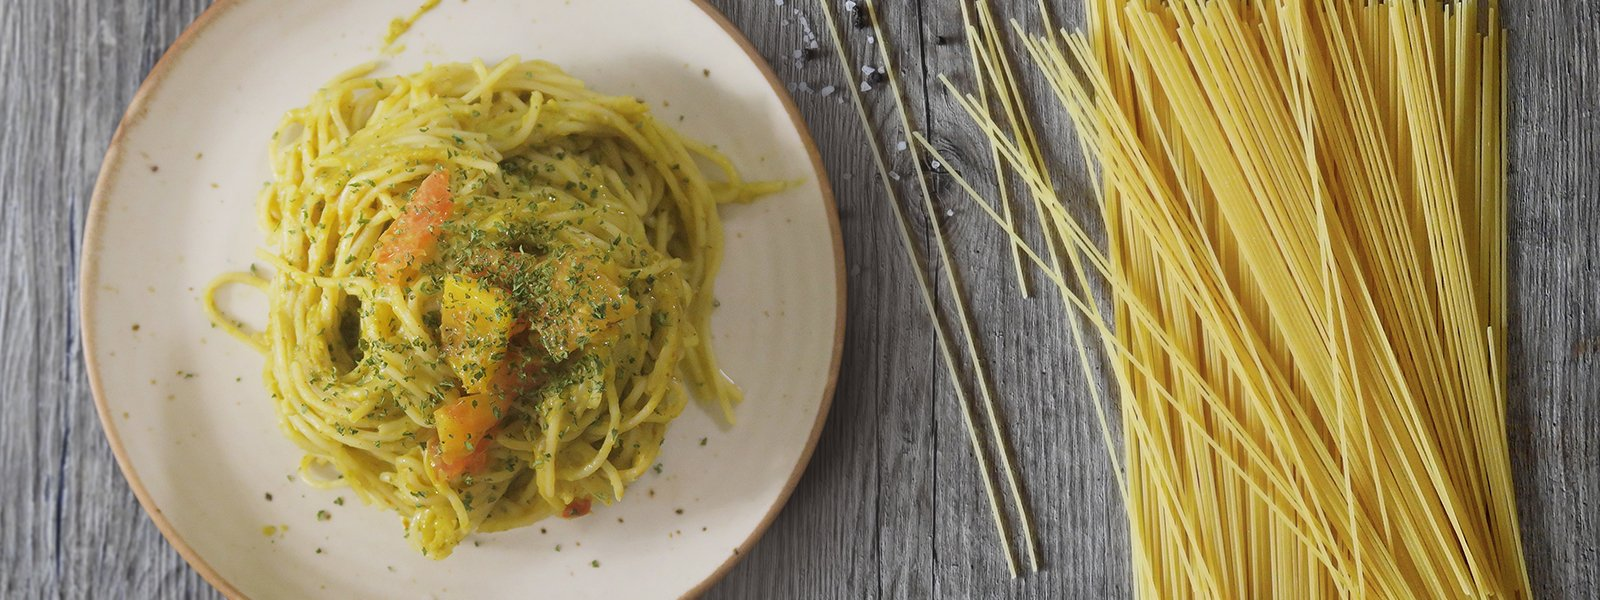 Burnt Garlic And Pumpkin Vegan Spaghetti